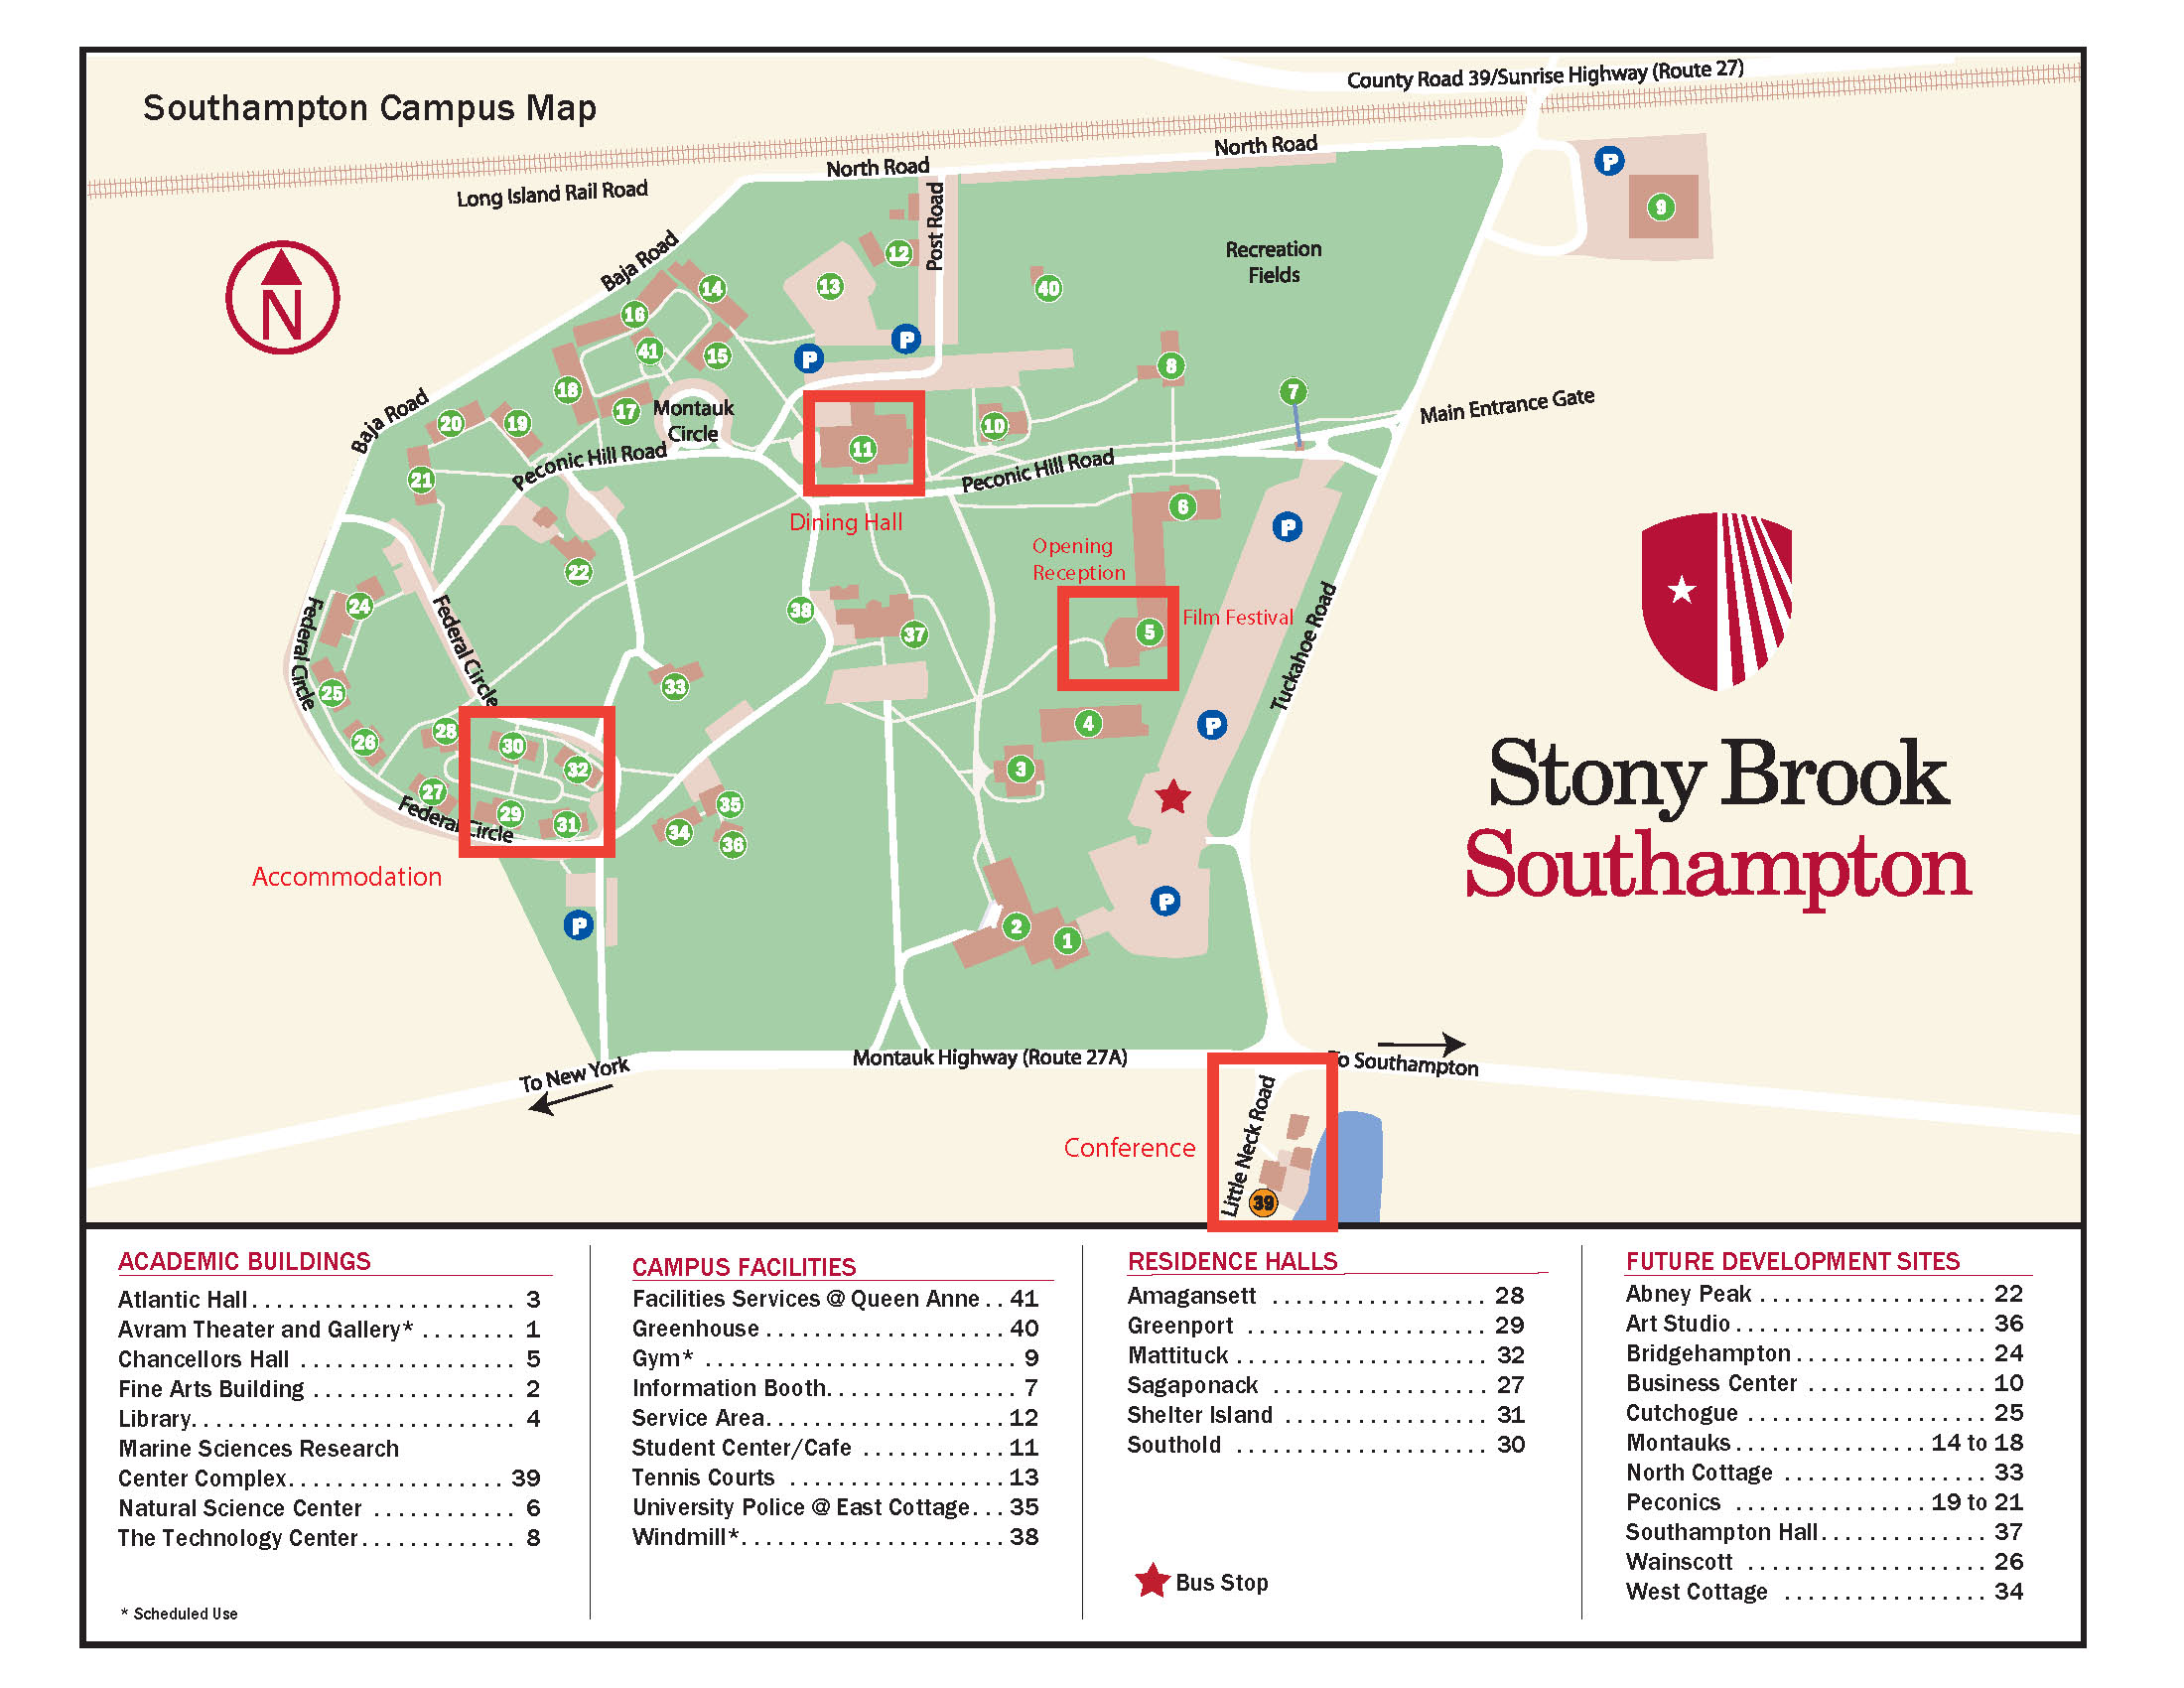 stony brook chat sites The opportunity to share problems through social networking sites such as facebook has never been greater  at stony brook university in new york,.